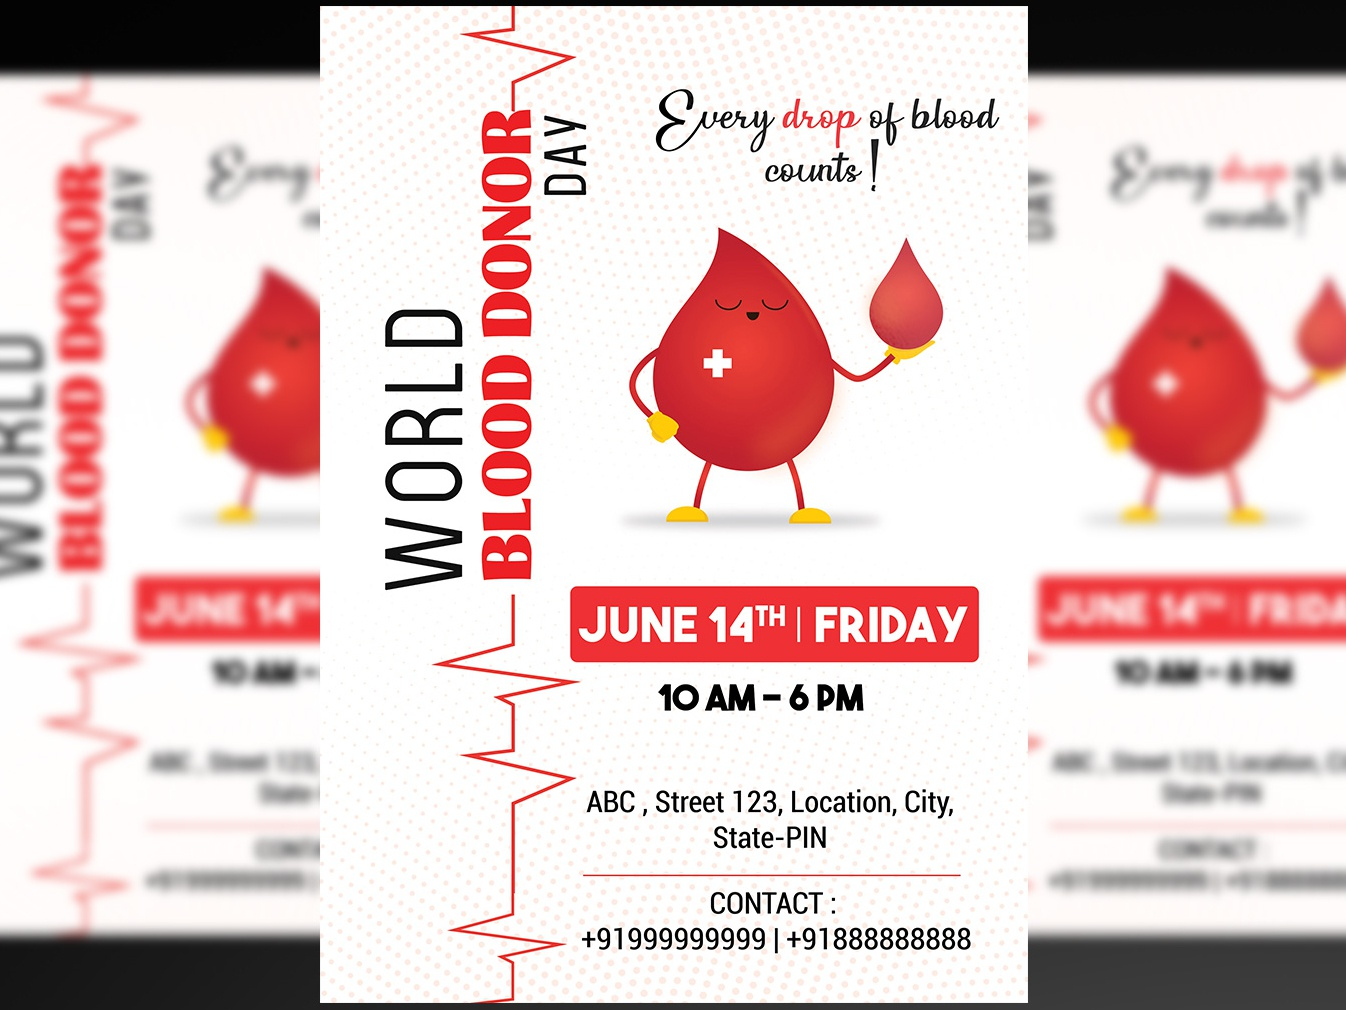 World Blood Donor Day Flyer + Social Media Post PSD blood donor day blood donor day flyer blood donor blood donor social media social media social media post international blood donor day blood donation organ donor